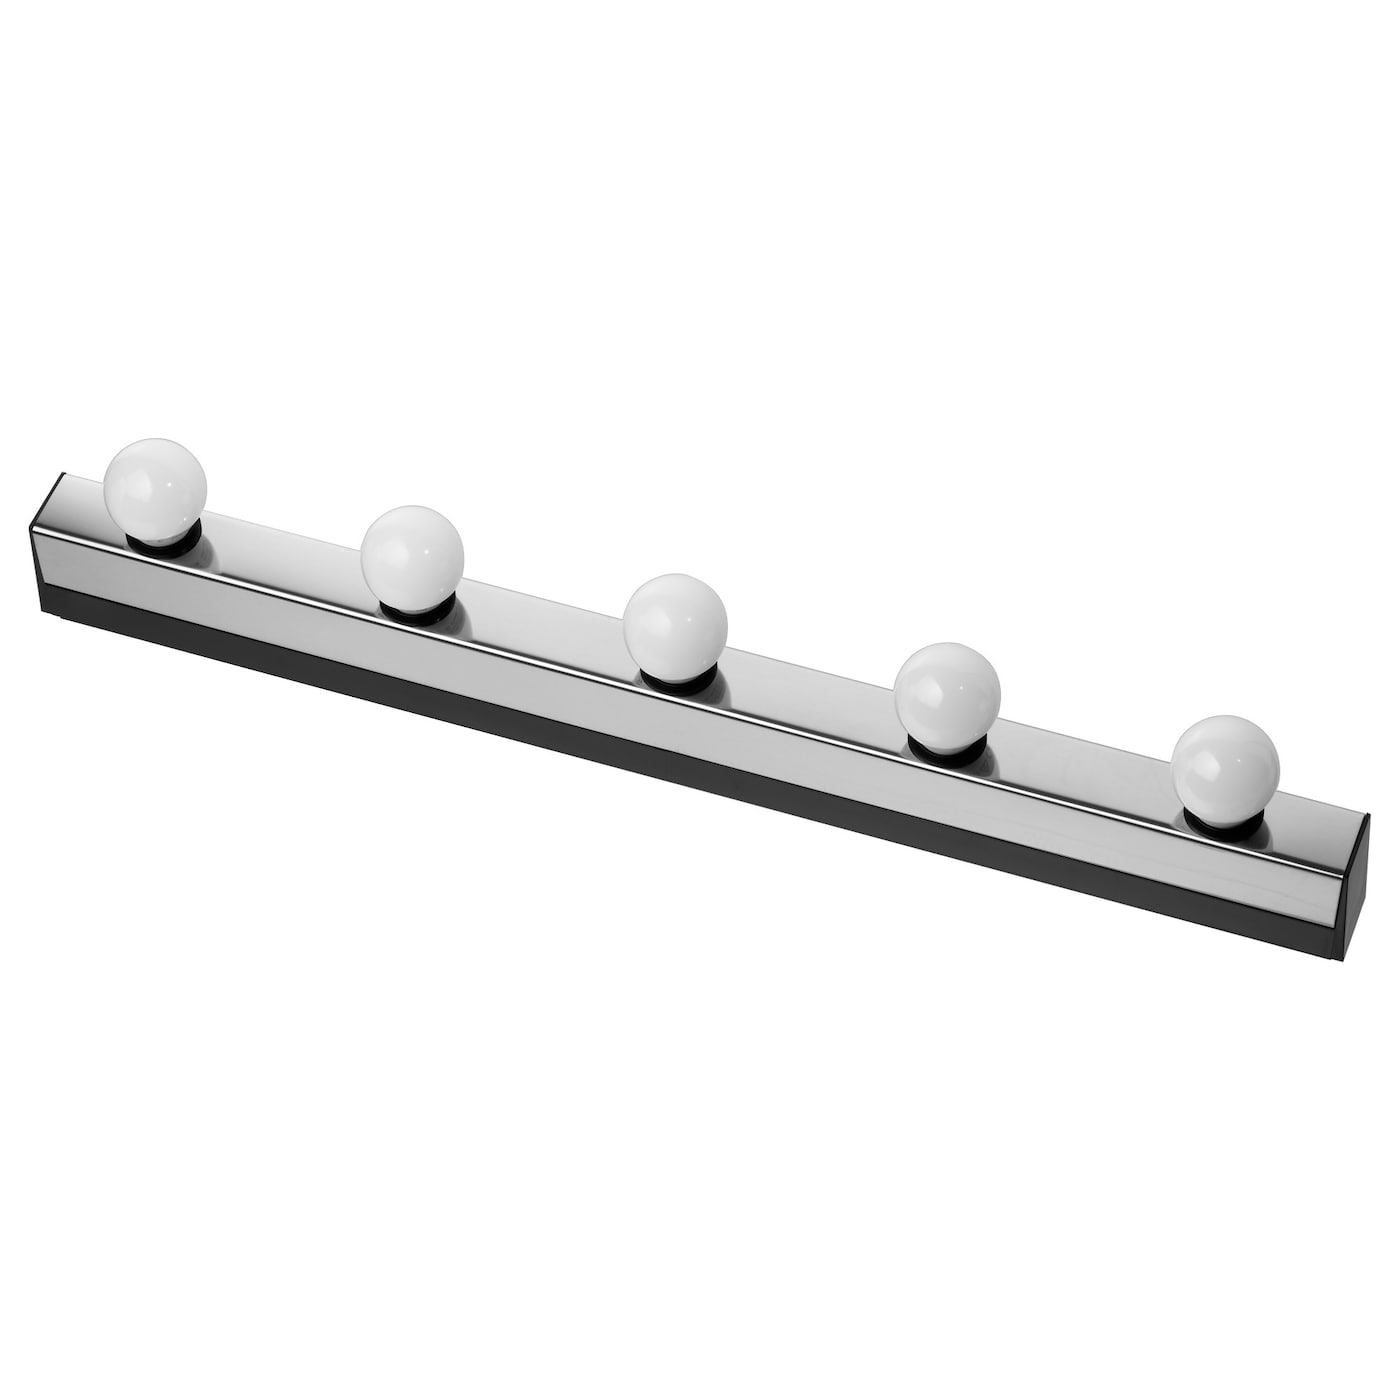 IKEA MUSIK wall lamp, wired-in installation You can hang it horizontally or vertically.